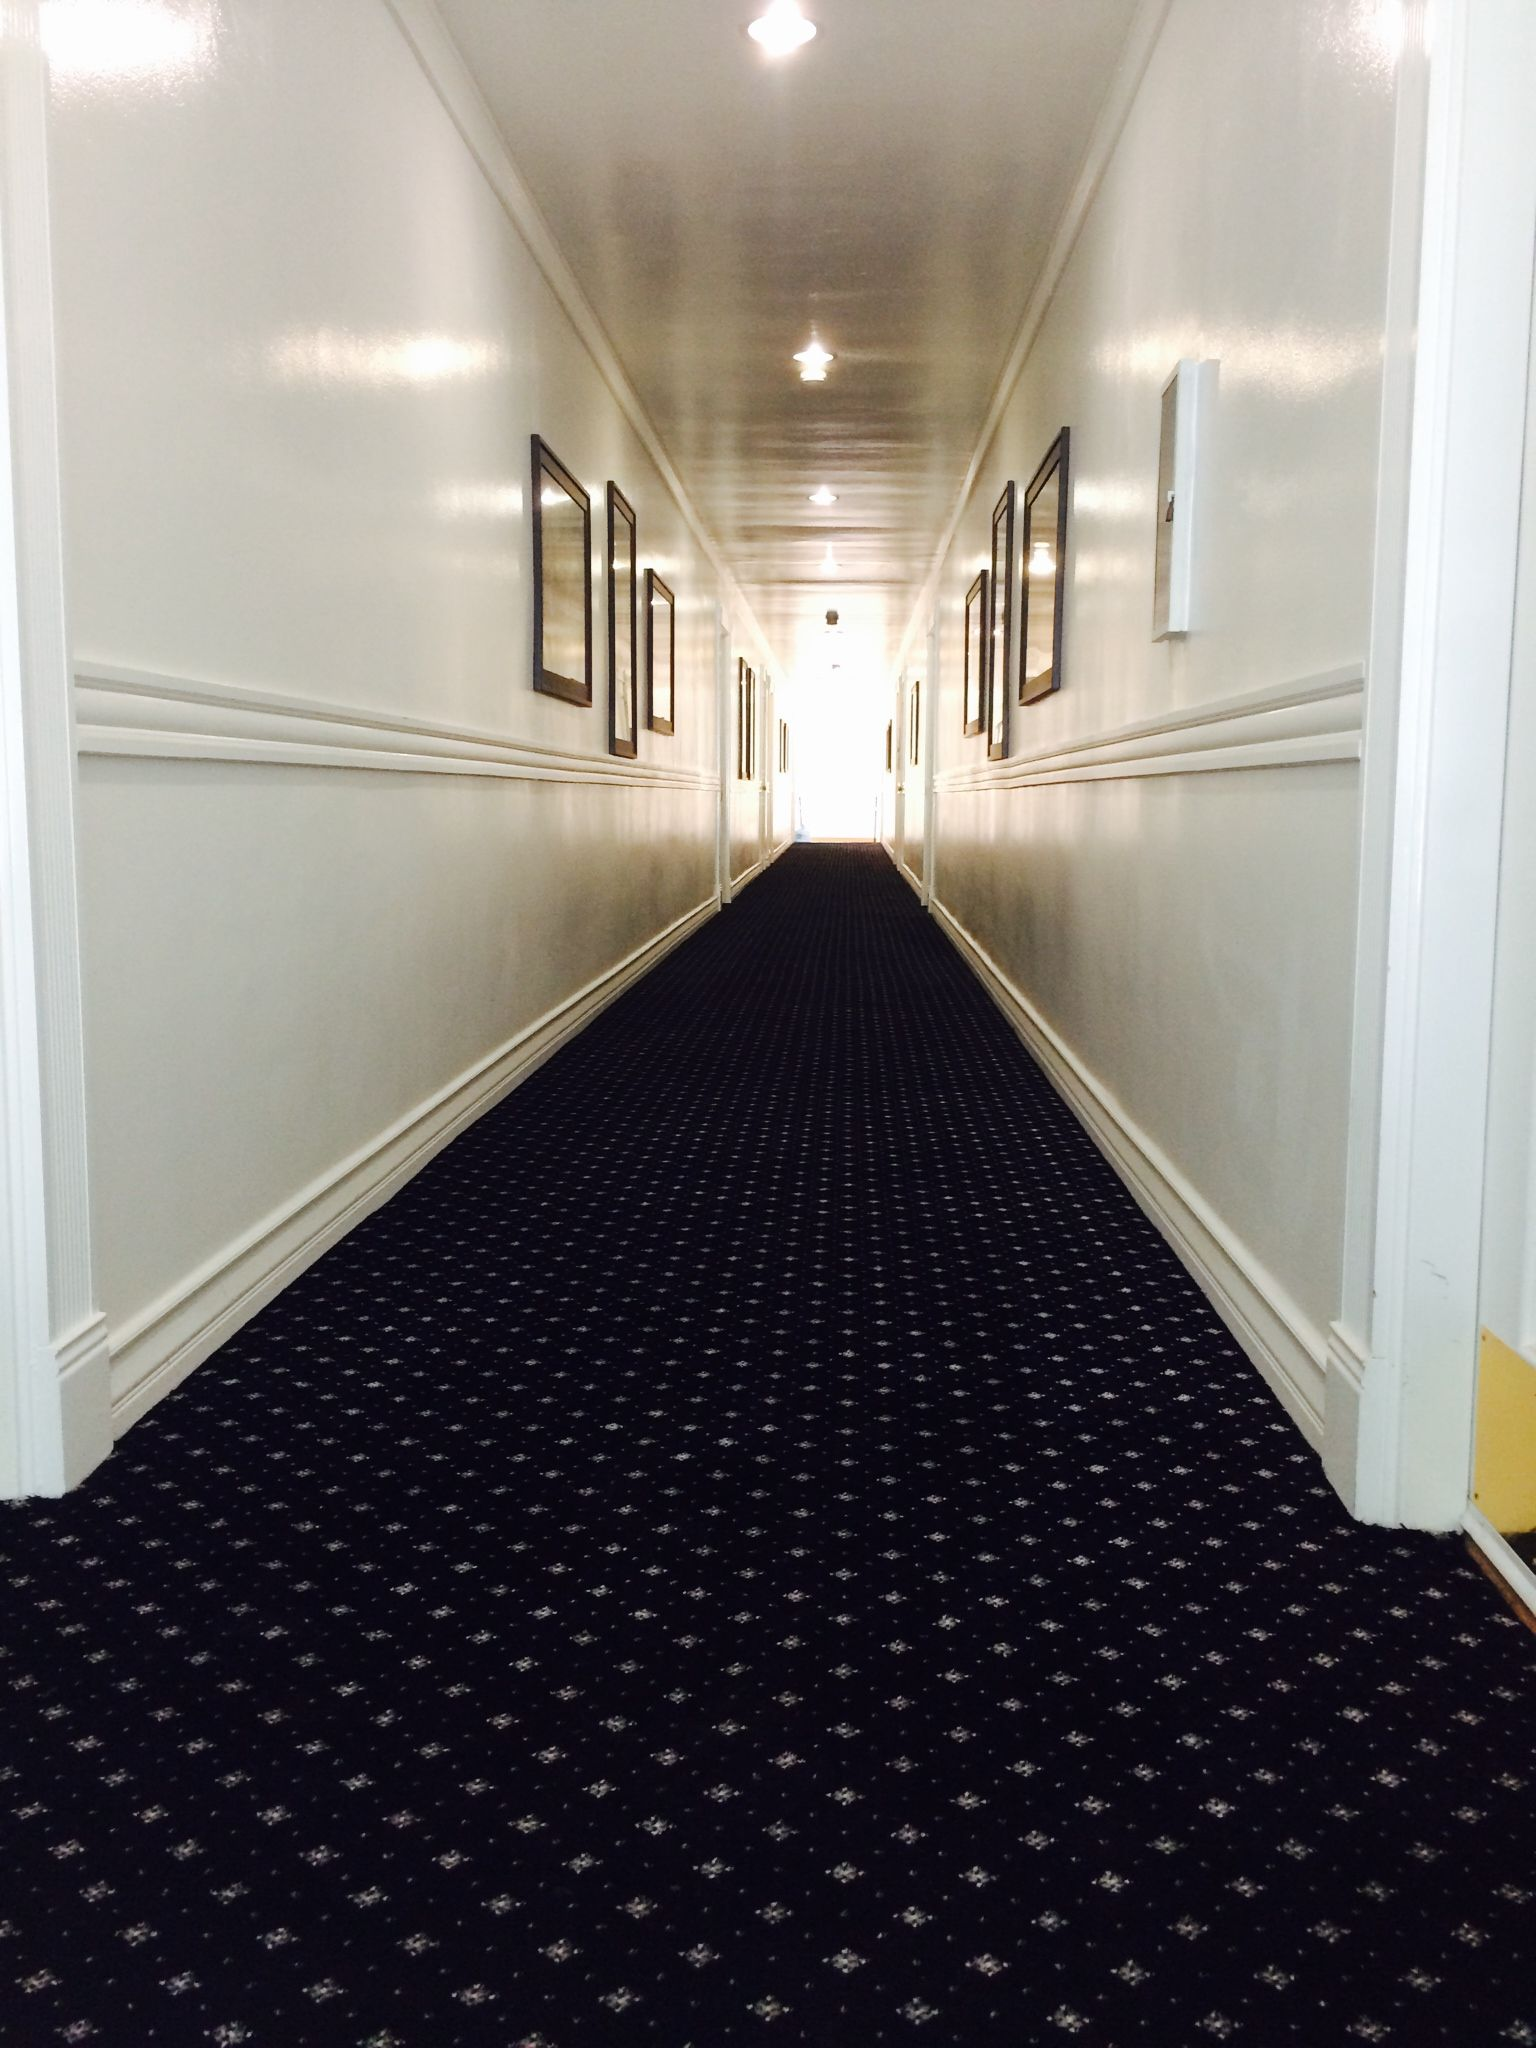 Commercial installations: Hotel hallway carpeting | Our ...